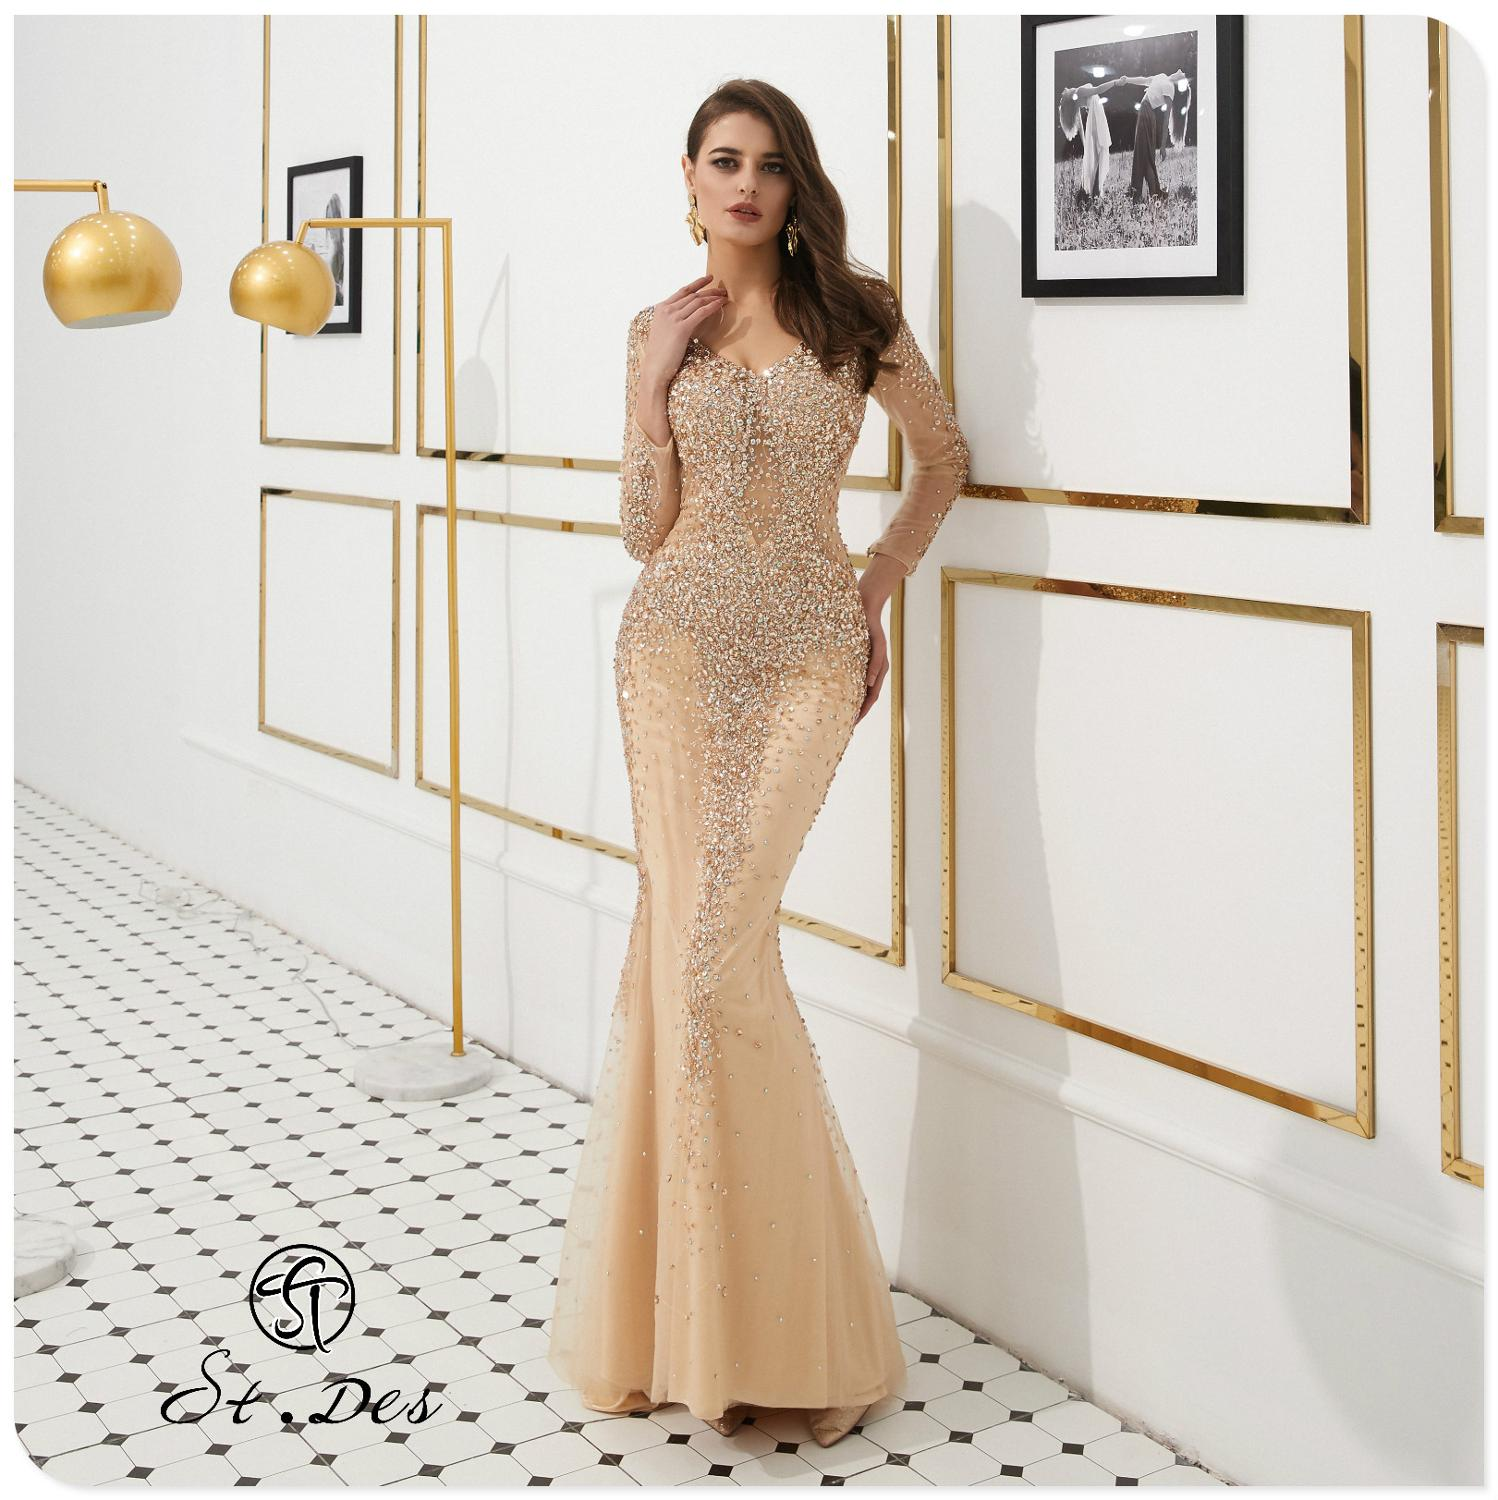 NEW 2020 St.Des Mermaid V-Neck Long Sleeve Russian Champagne Beading Mid-sleeve Designer Floor Length Evening Dress Party Dress